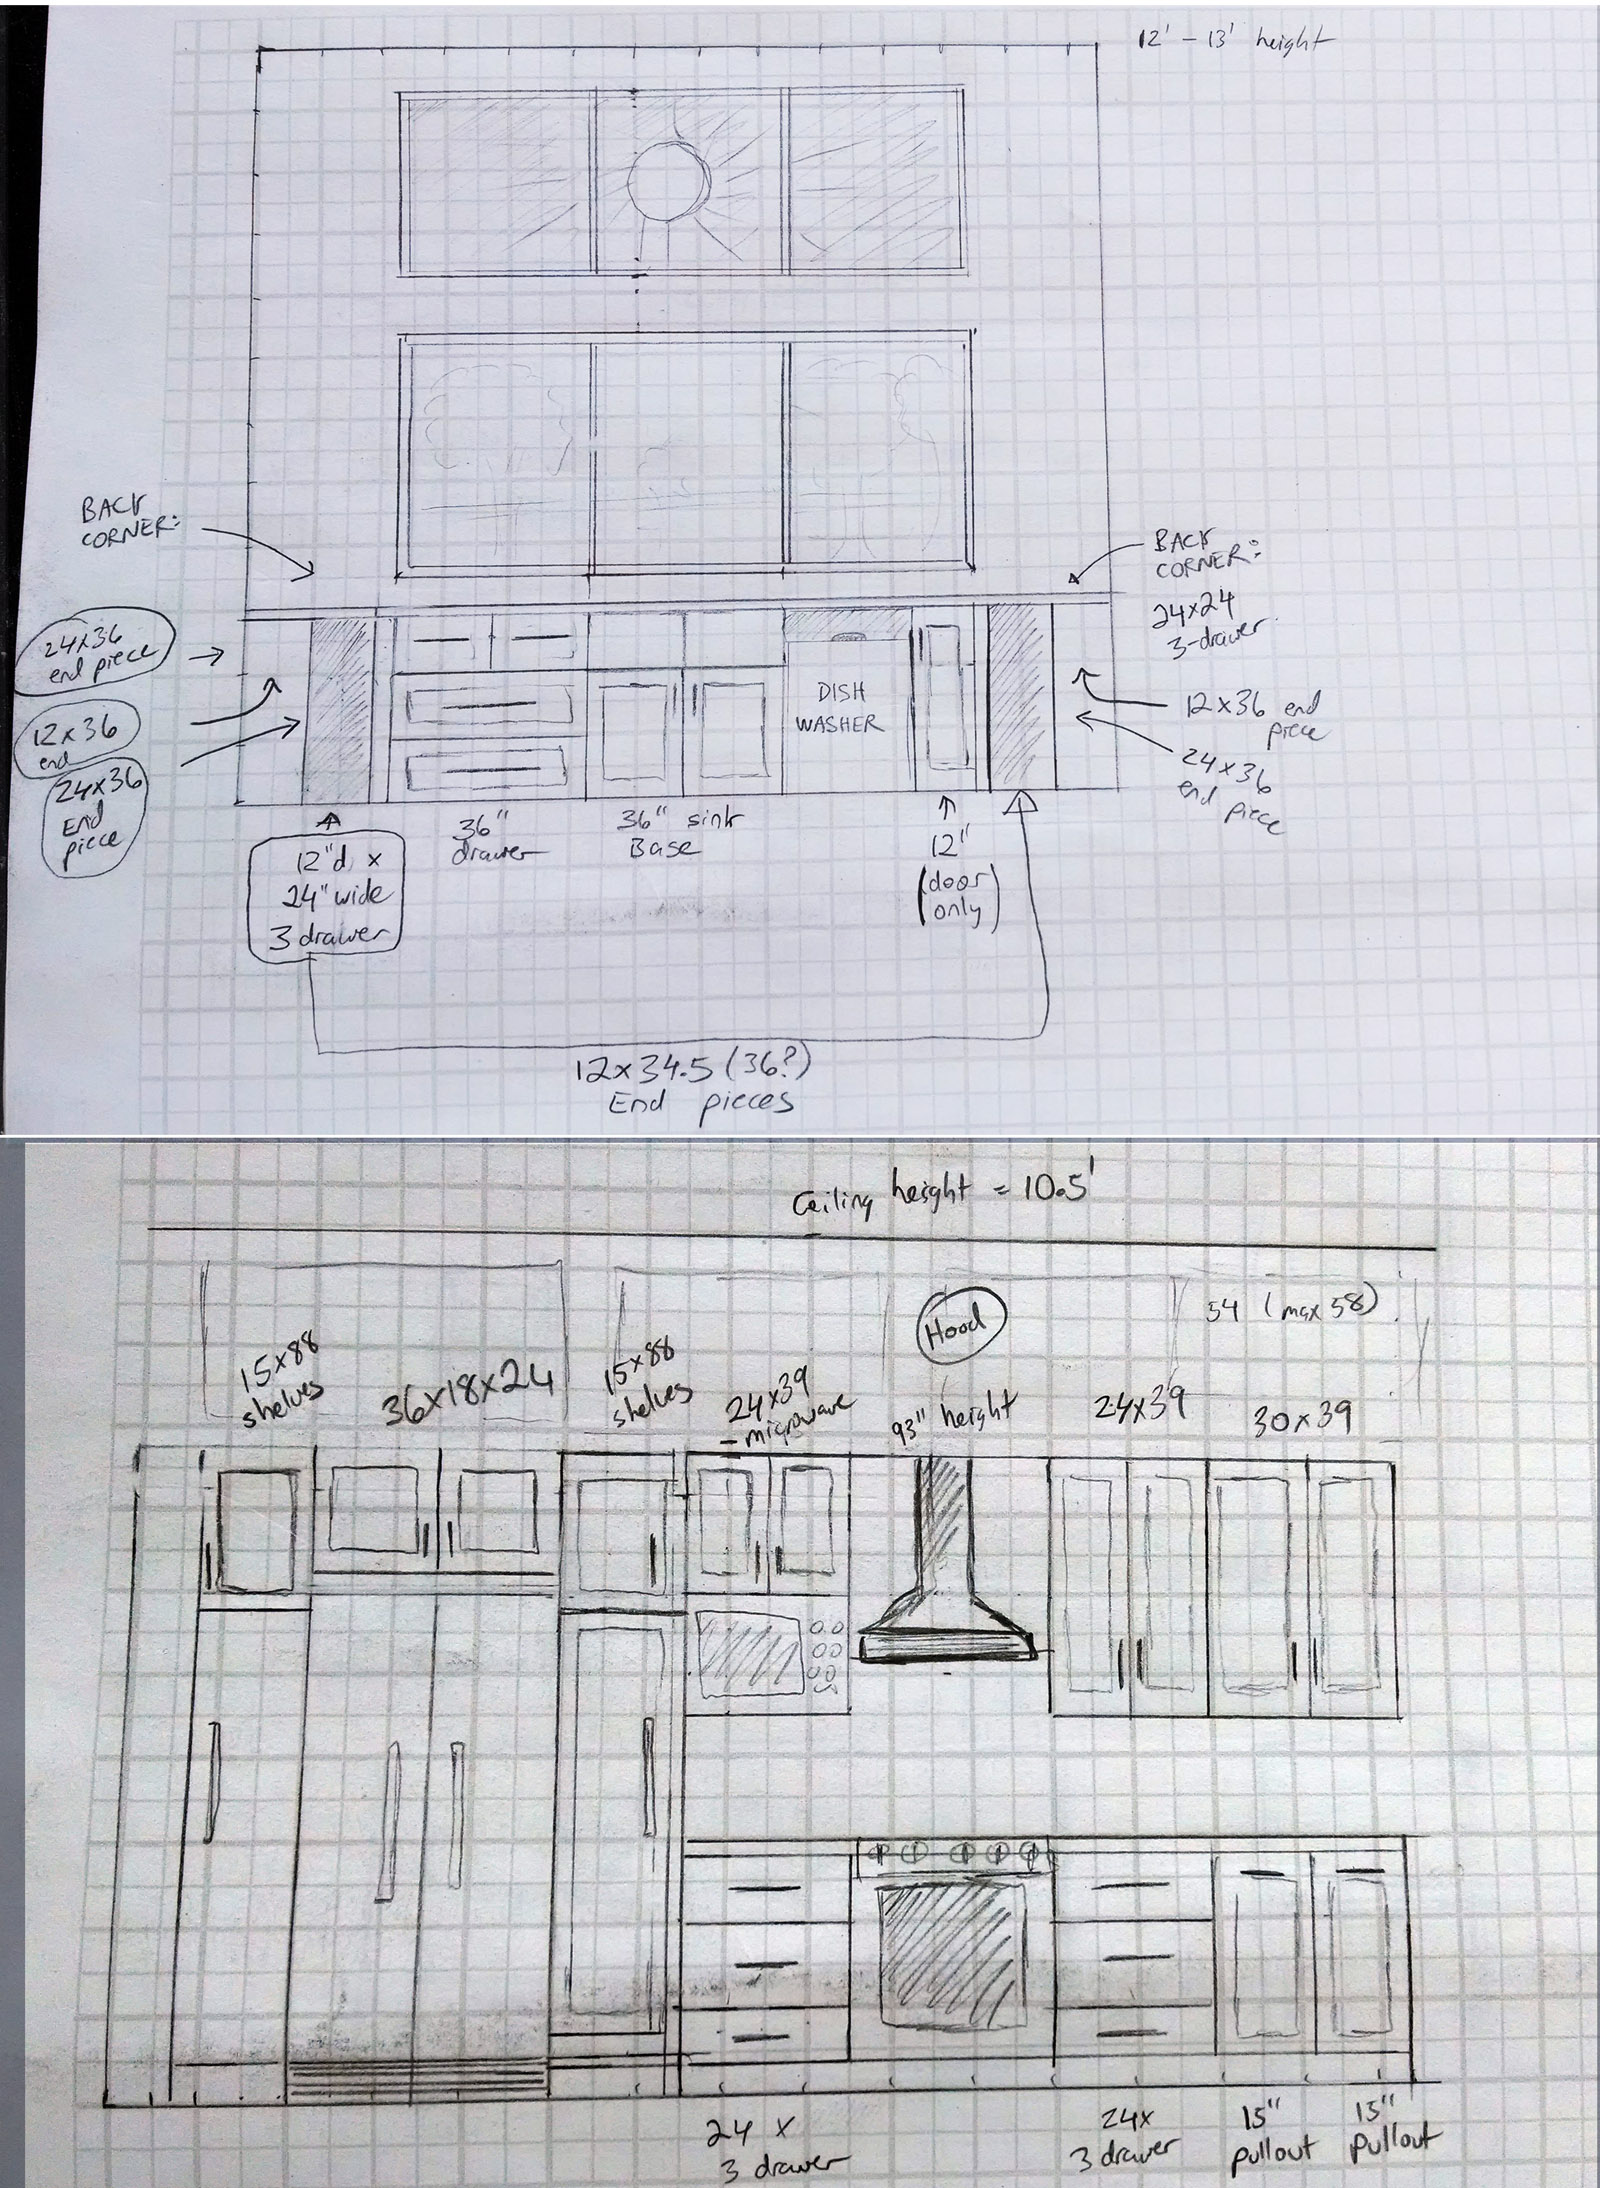 Shaving The Costly Edges From A Major Renovation Mr Money Mustache Seeking Advice For Three Way Electrical Wiring Forum Gardenweb My Sketches Of Kitchen Design Note 12 Foot Wall South